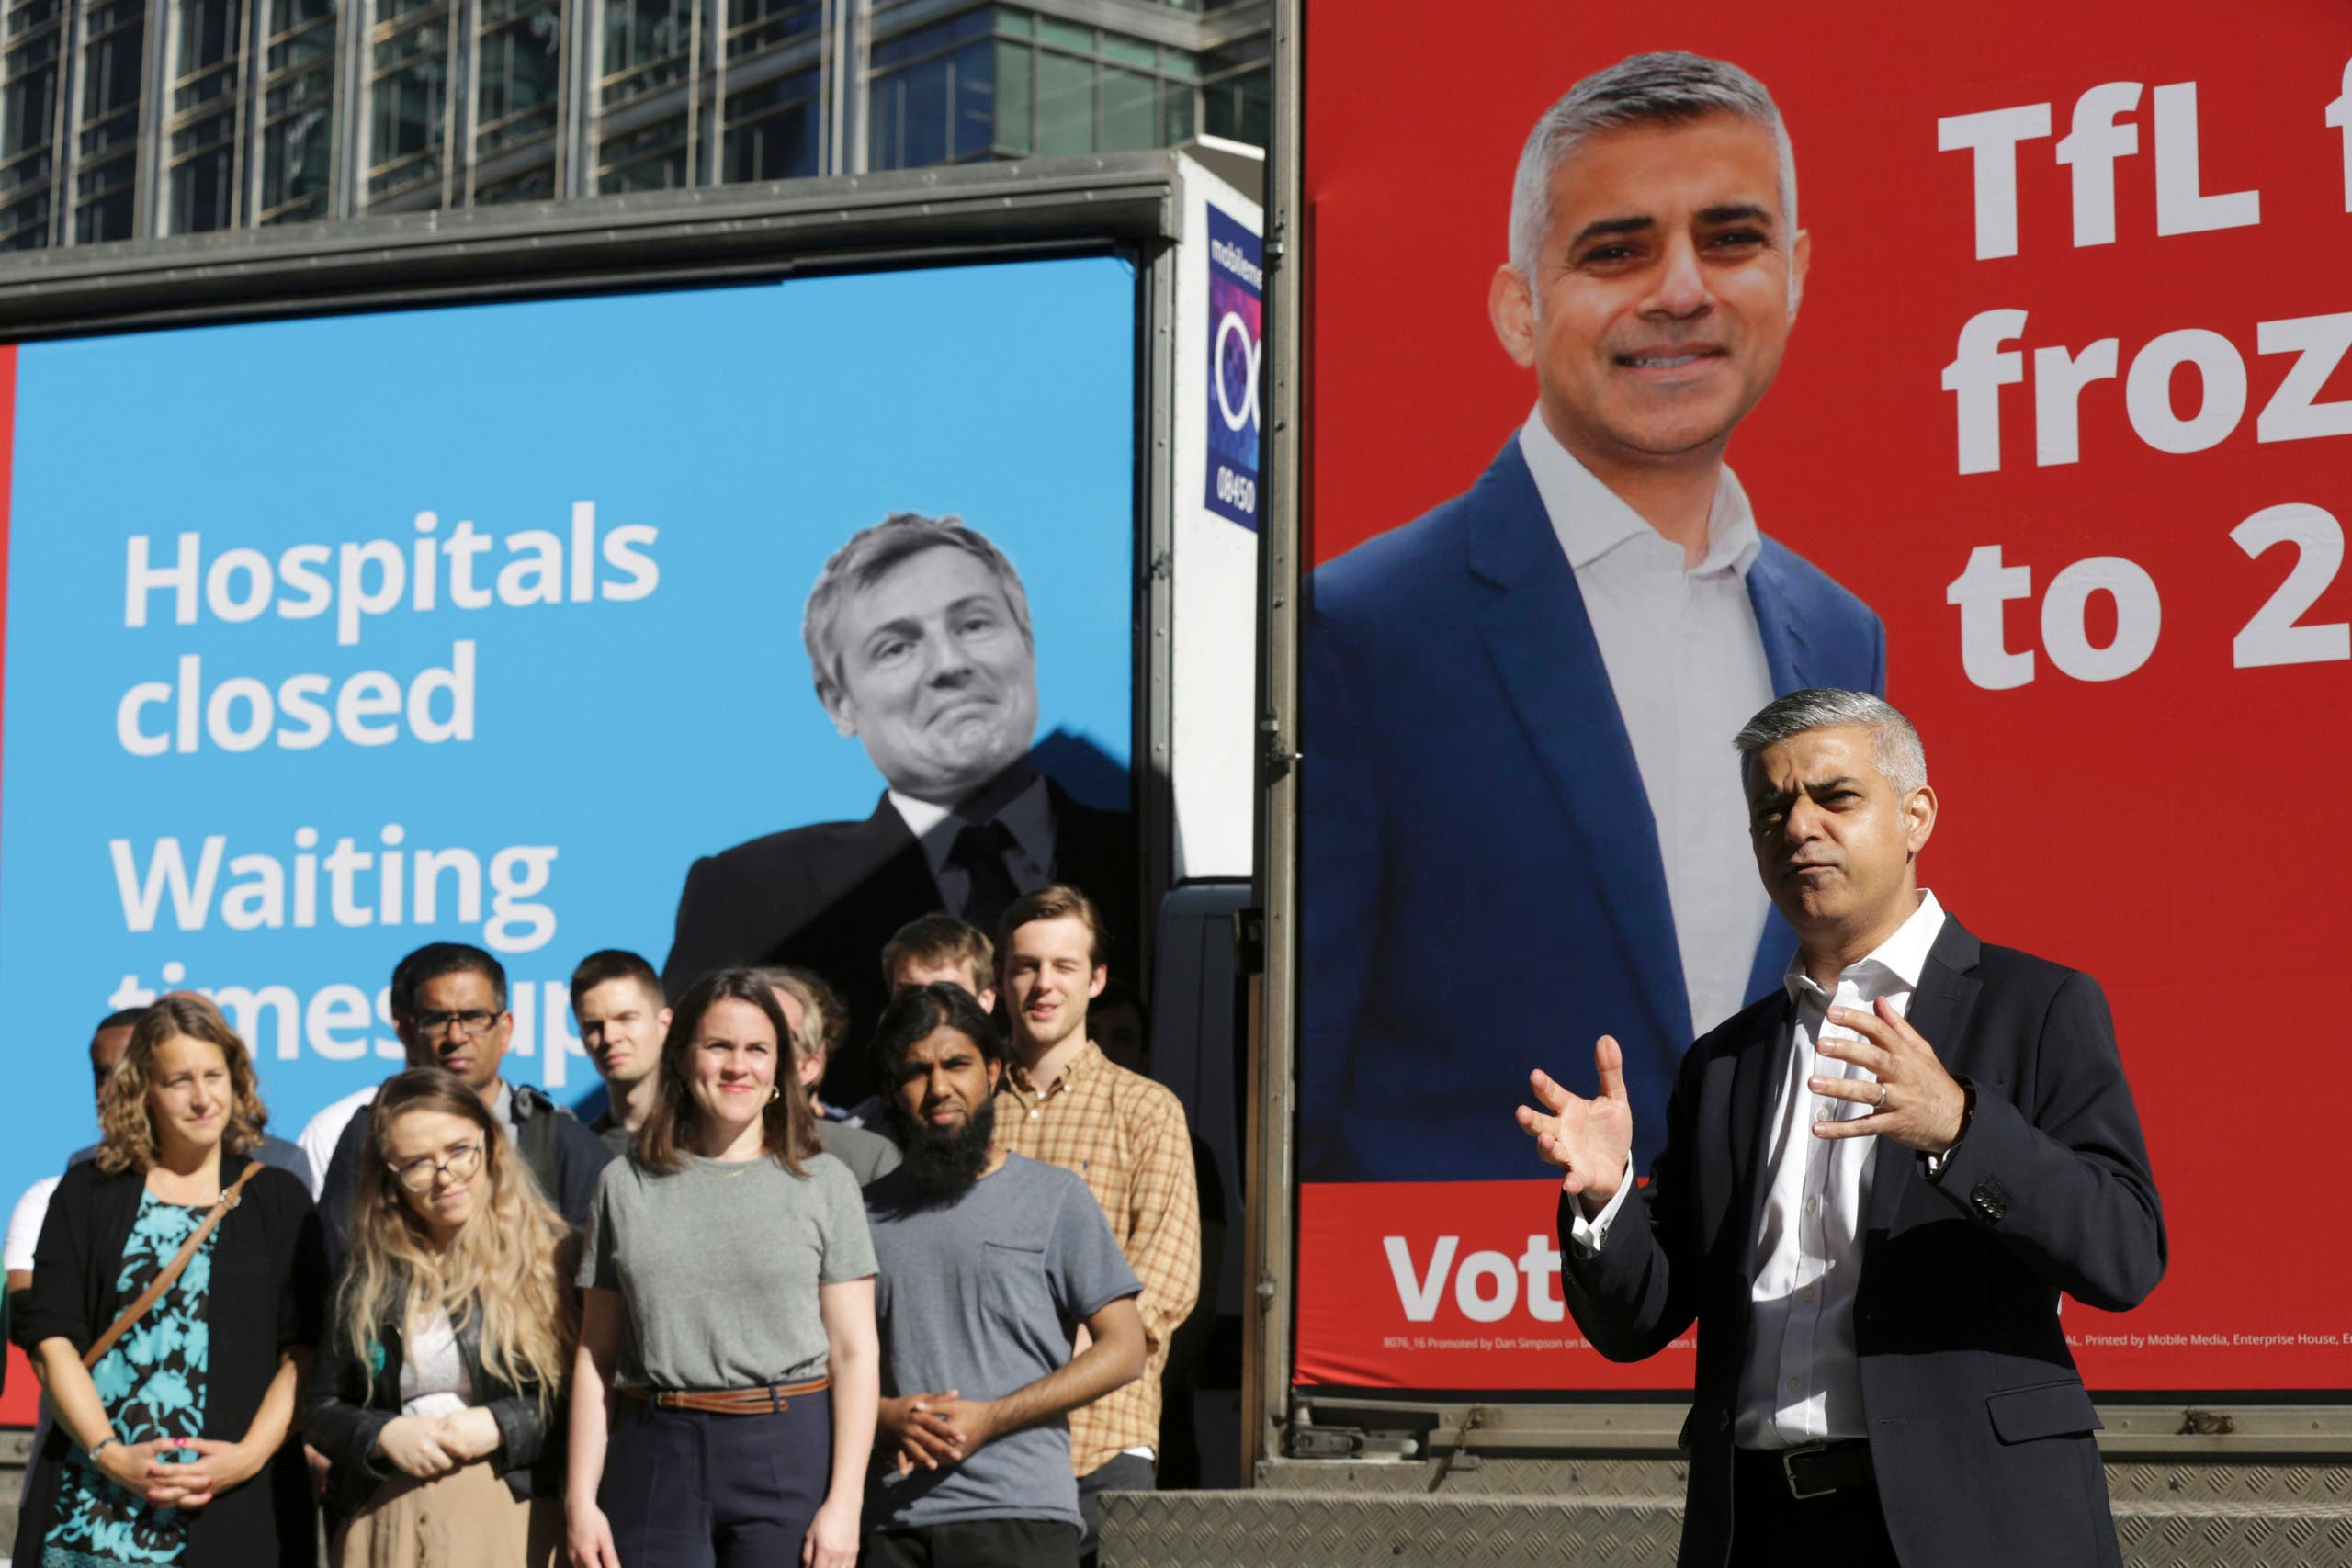 Sadiq Khan, Britain's Labour Party candidate for Mayor of London, speaks to supporters at Canary Wharf in London, Britain May 4, 2016. (Reuters)